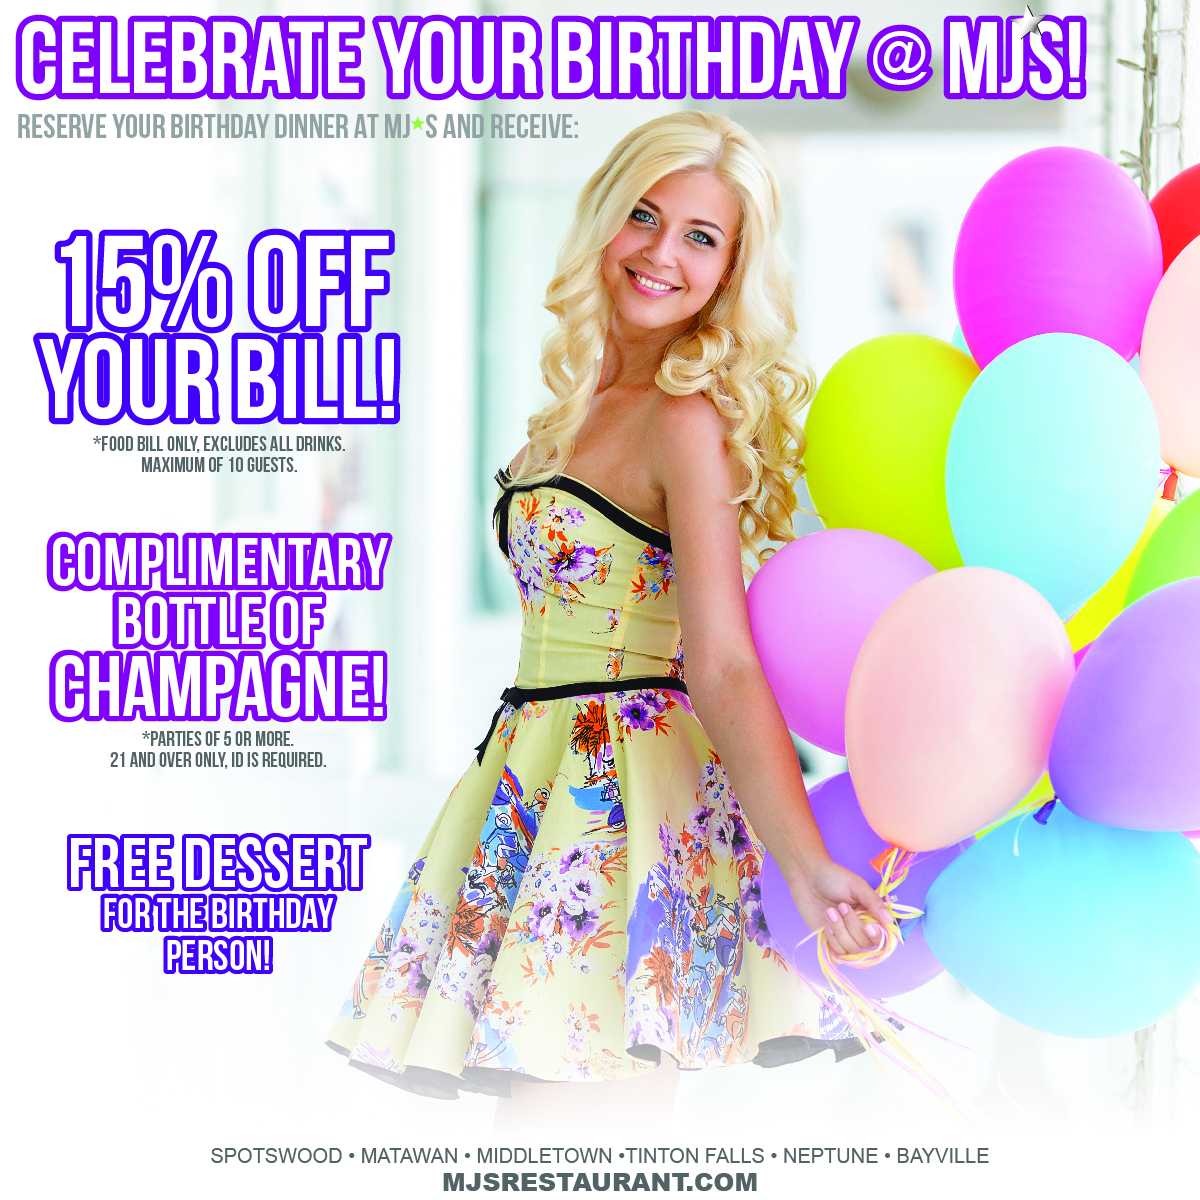 Celebrate your birthday at MJ's!